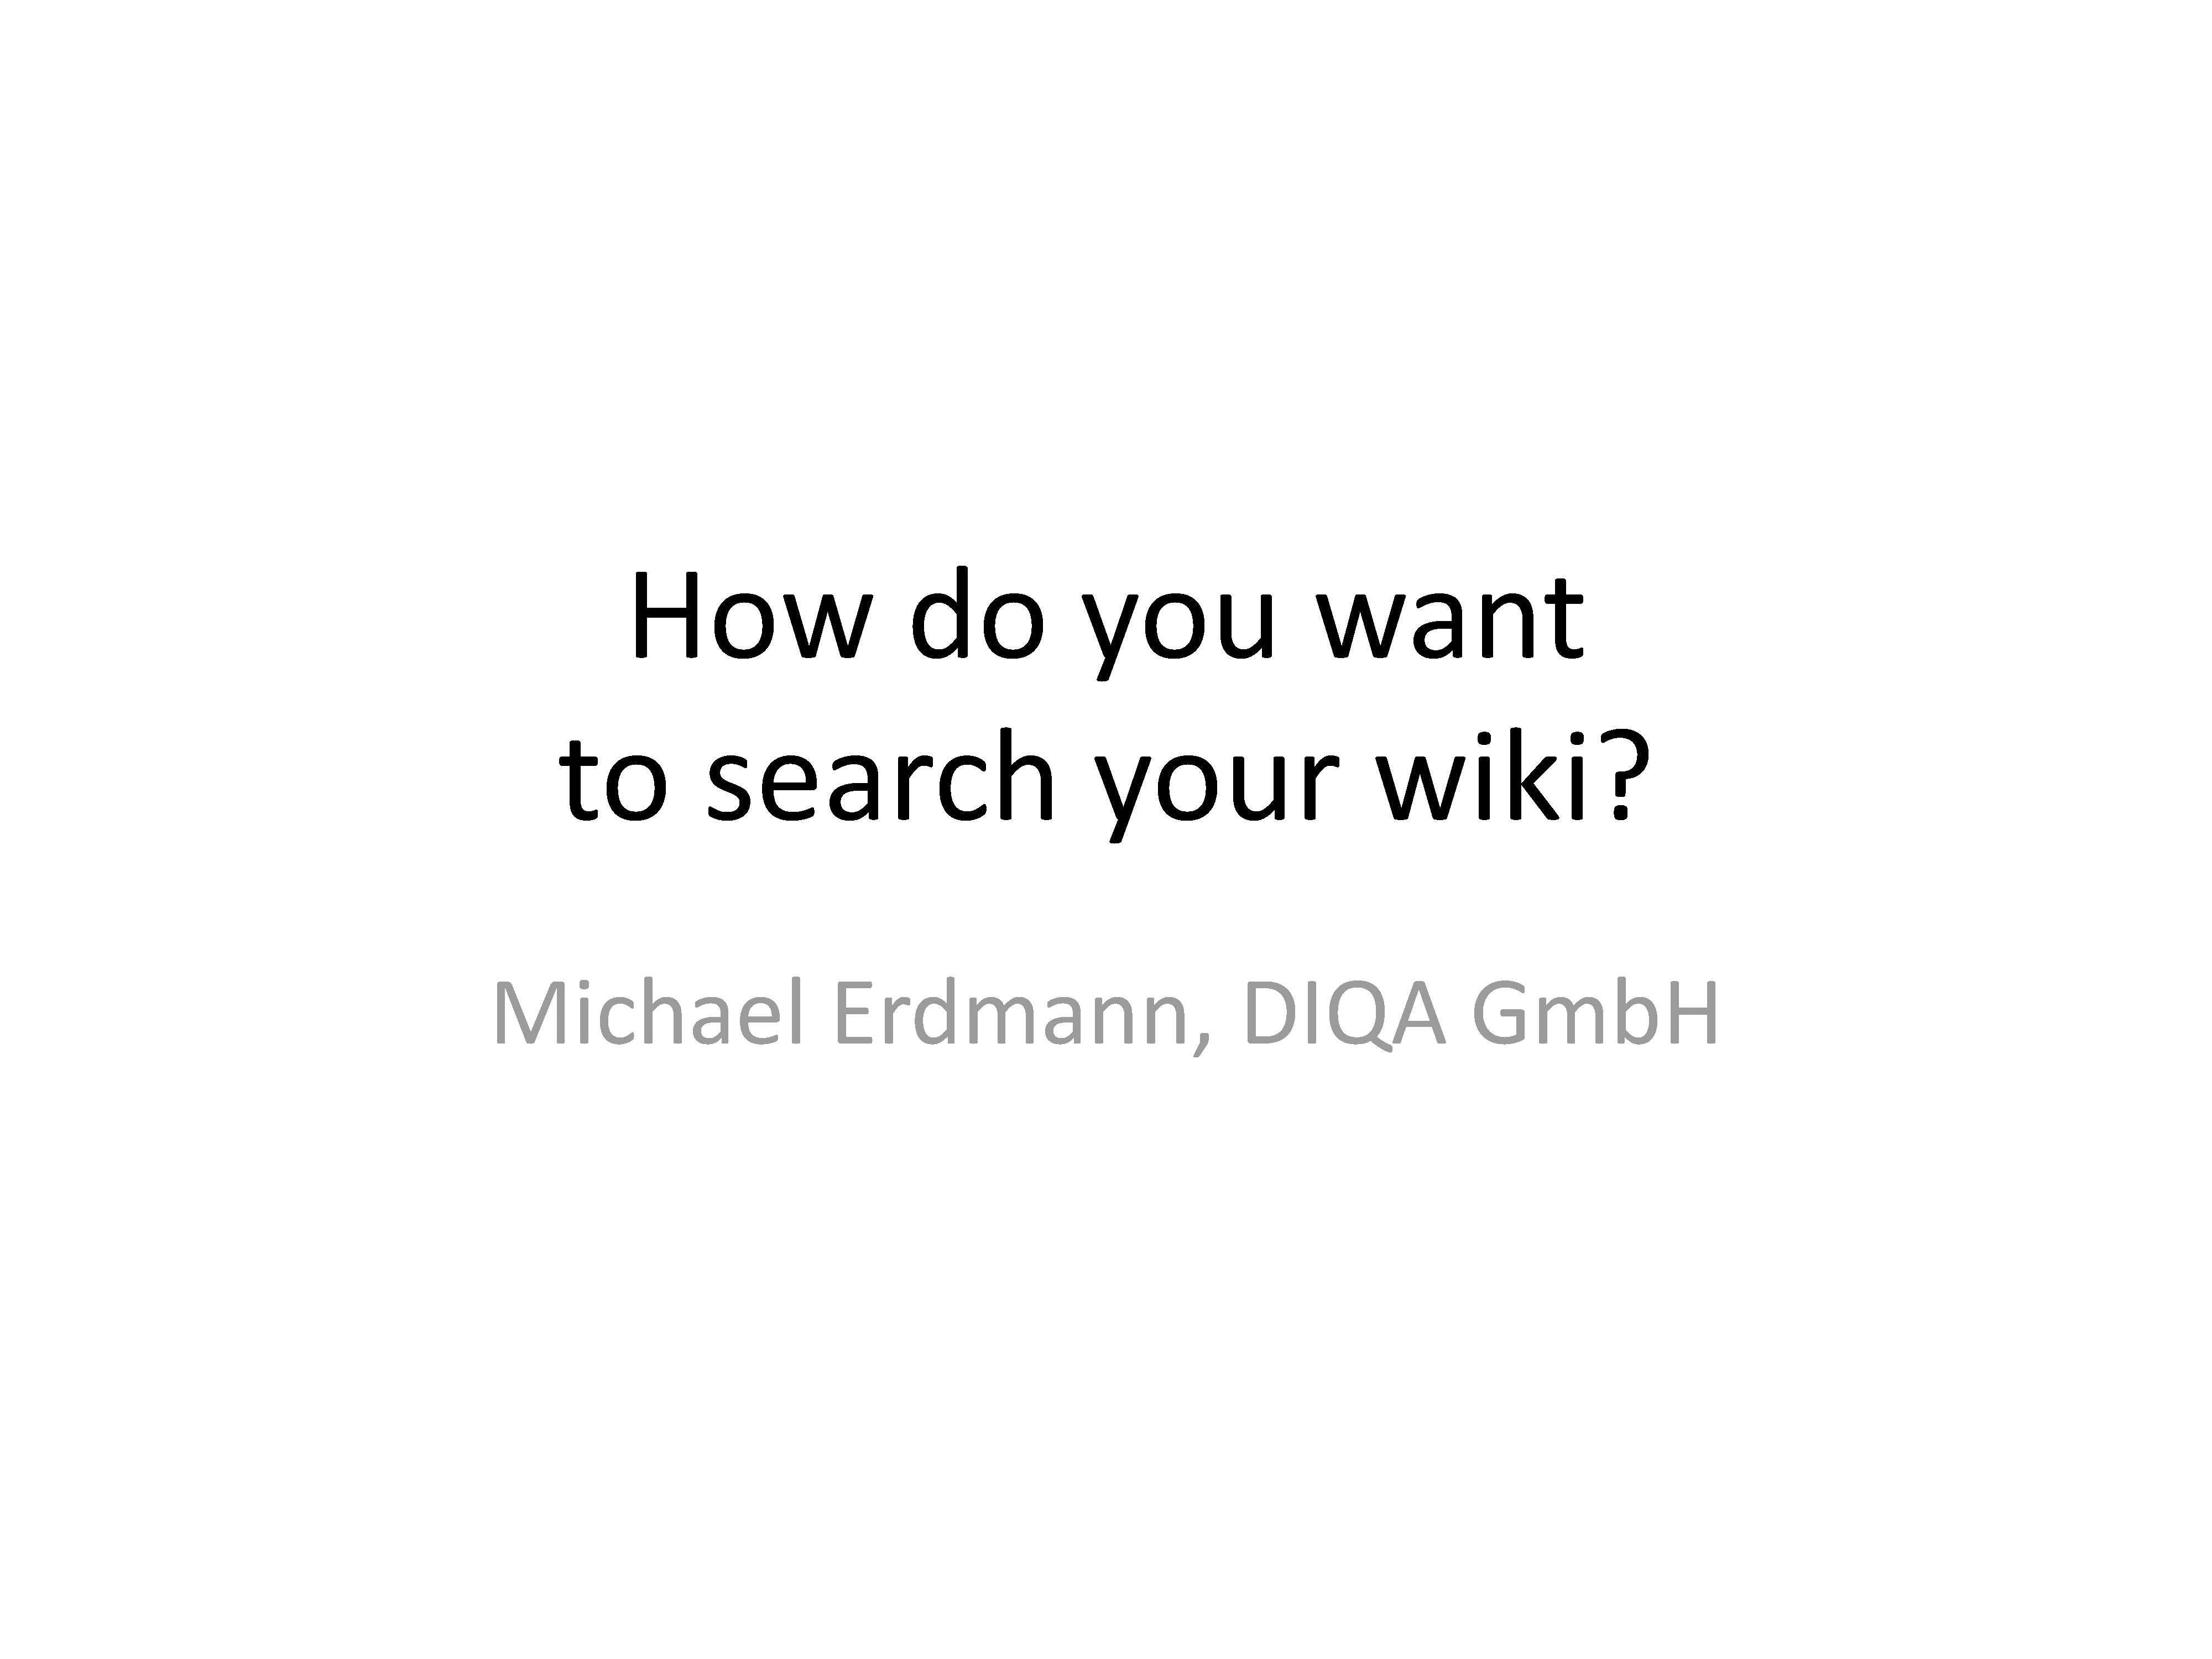 Poll: How do you want to search your wiki?